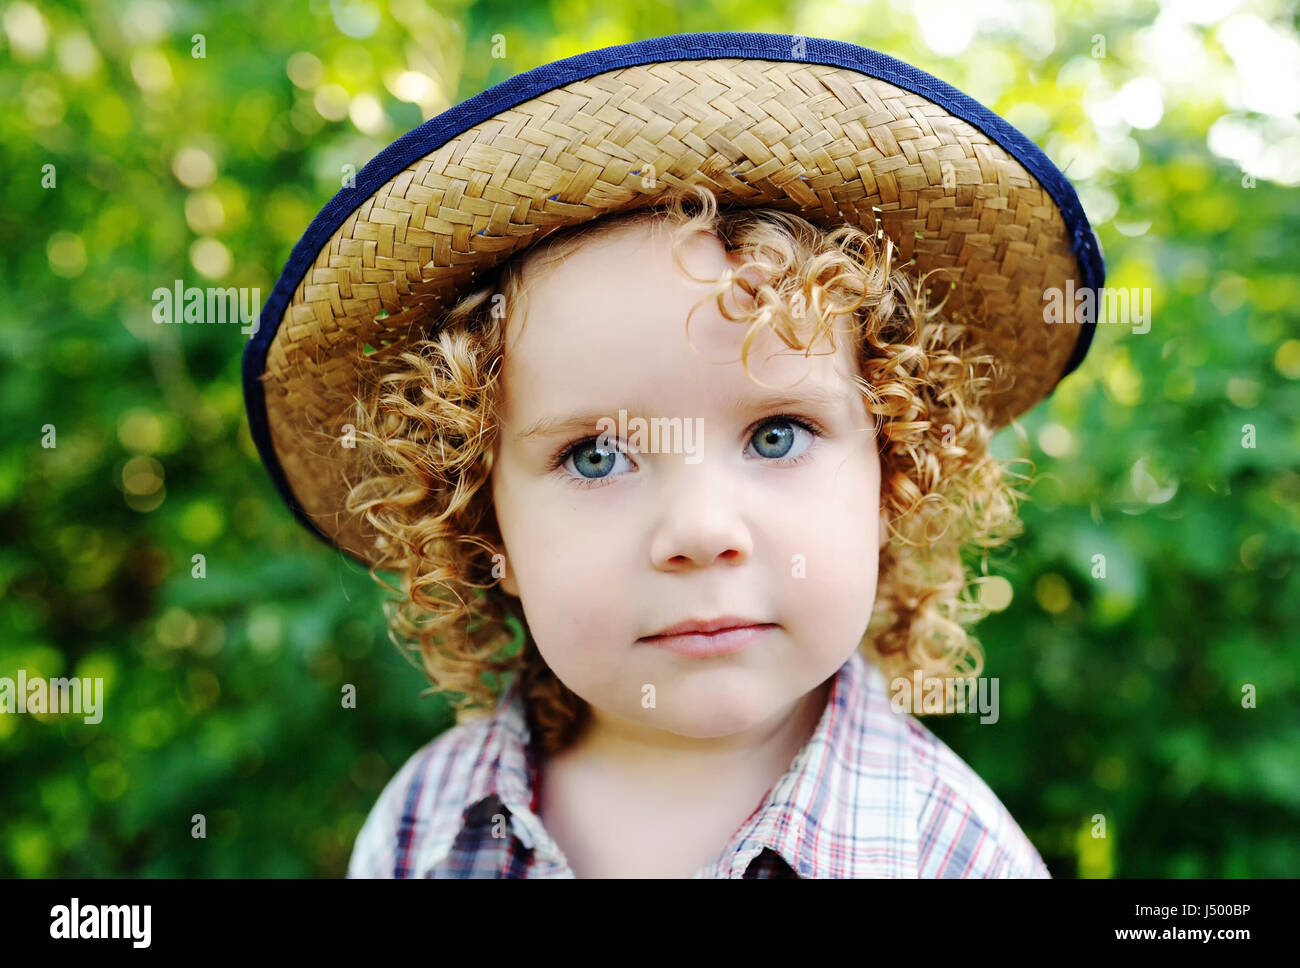 8d55d7768 portrait of curly red-haired baby in a hat Stock Photo: 140756554 ...